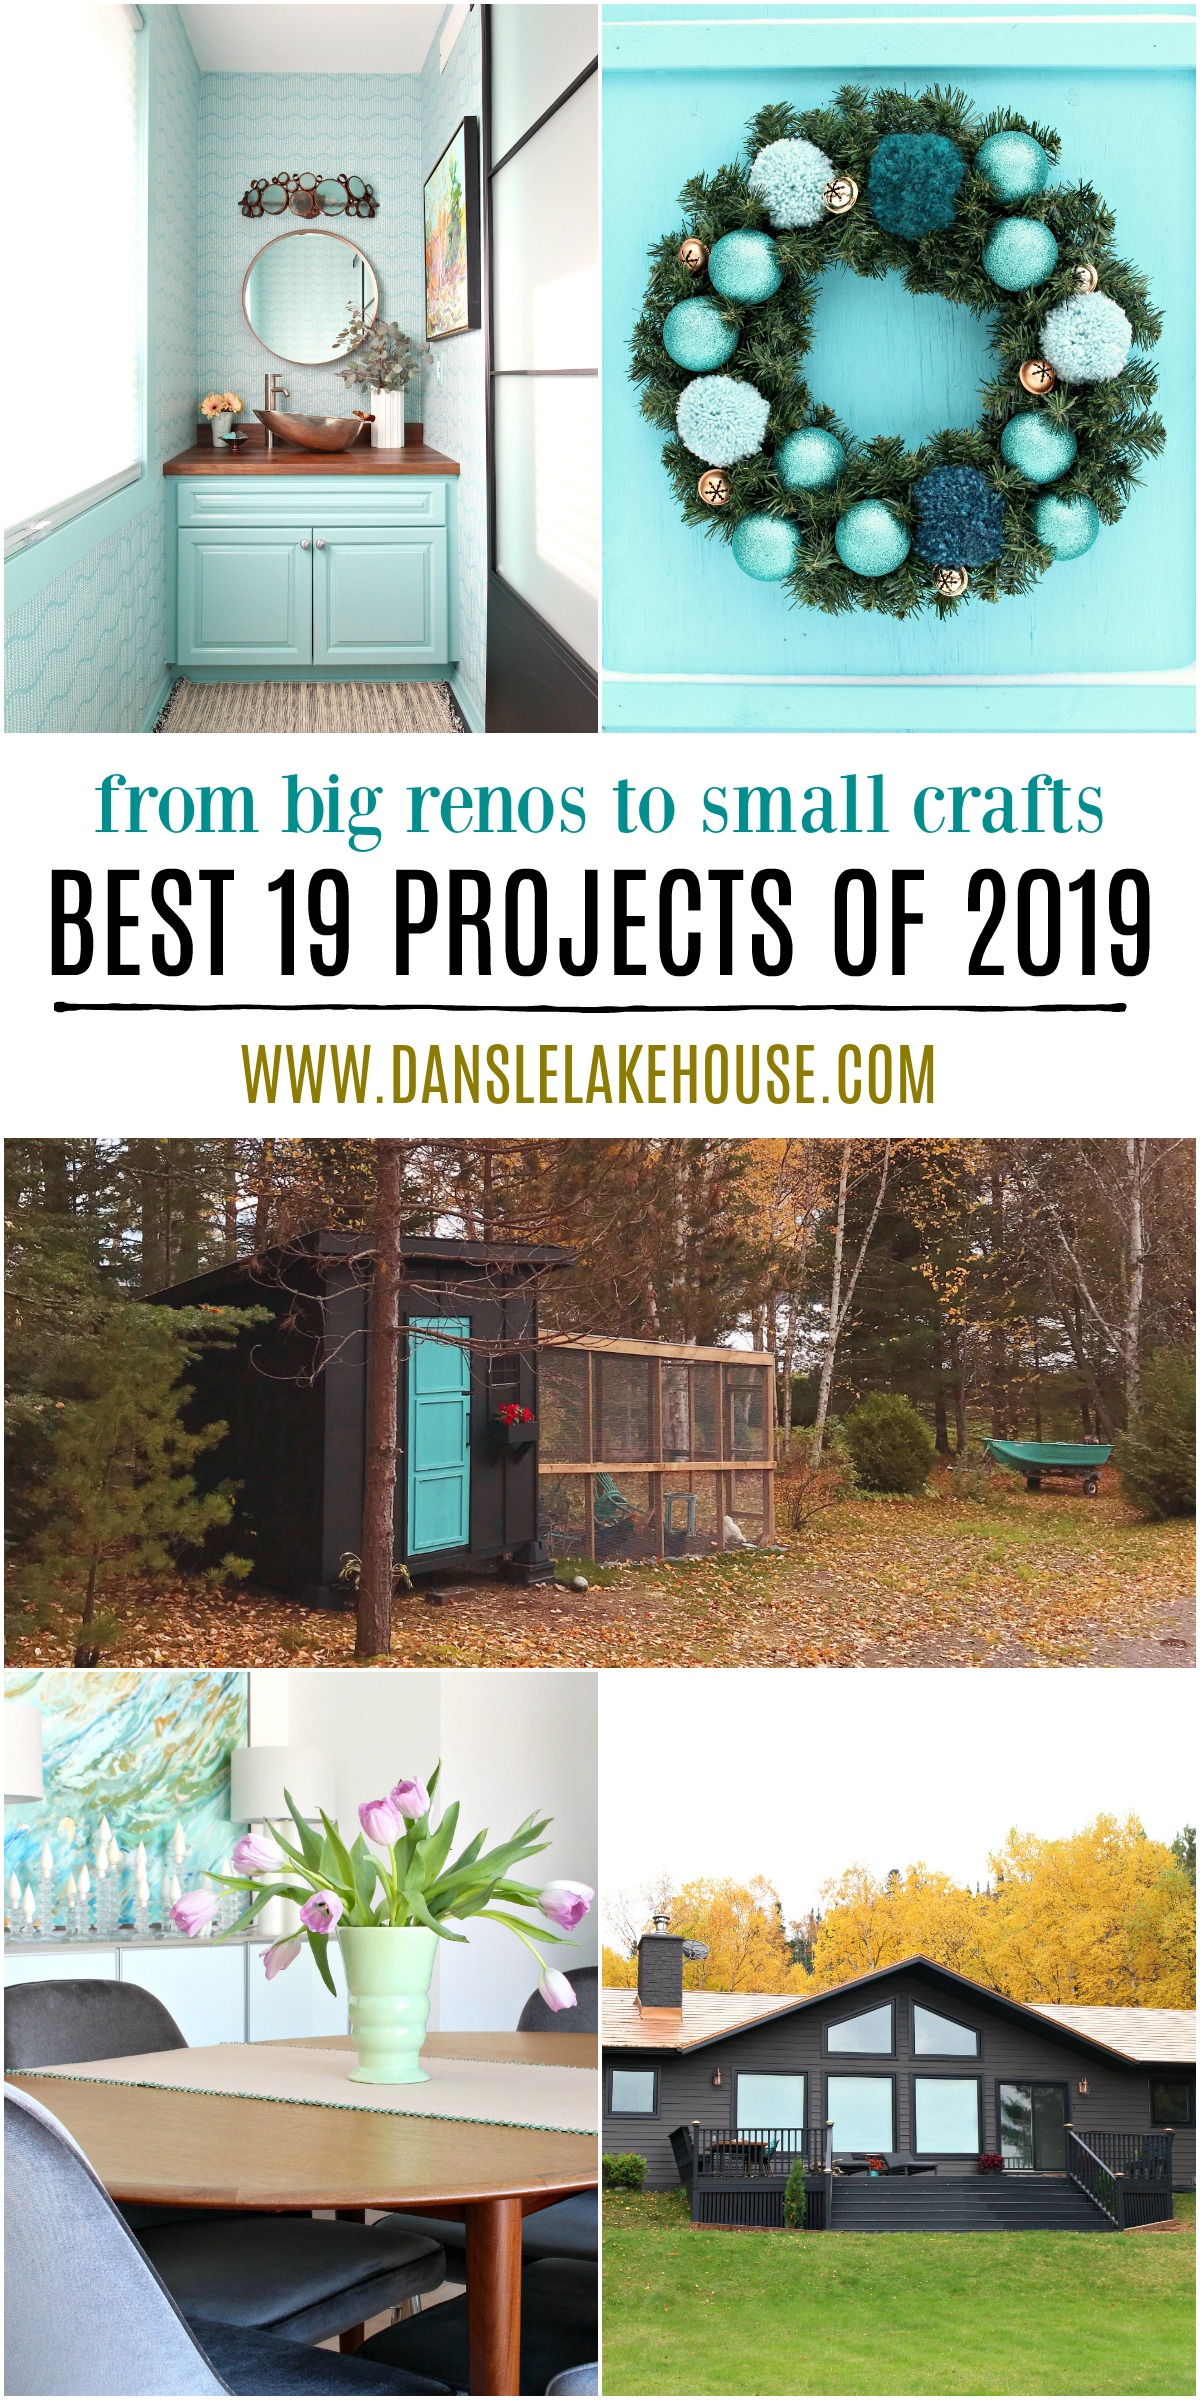 Best 19 Posts of 2019, from DIY and Home Decor Blog: Dans le Lakehouse